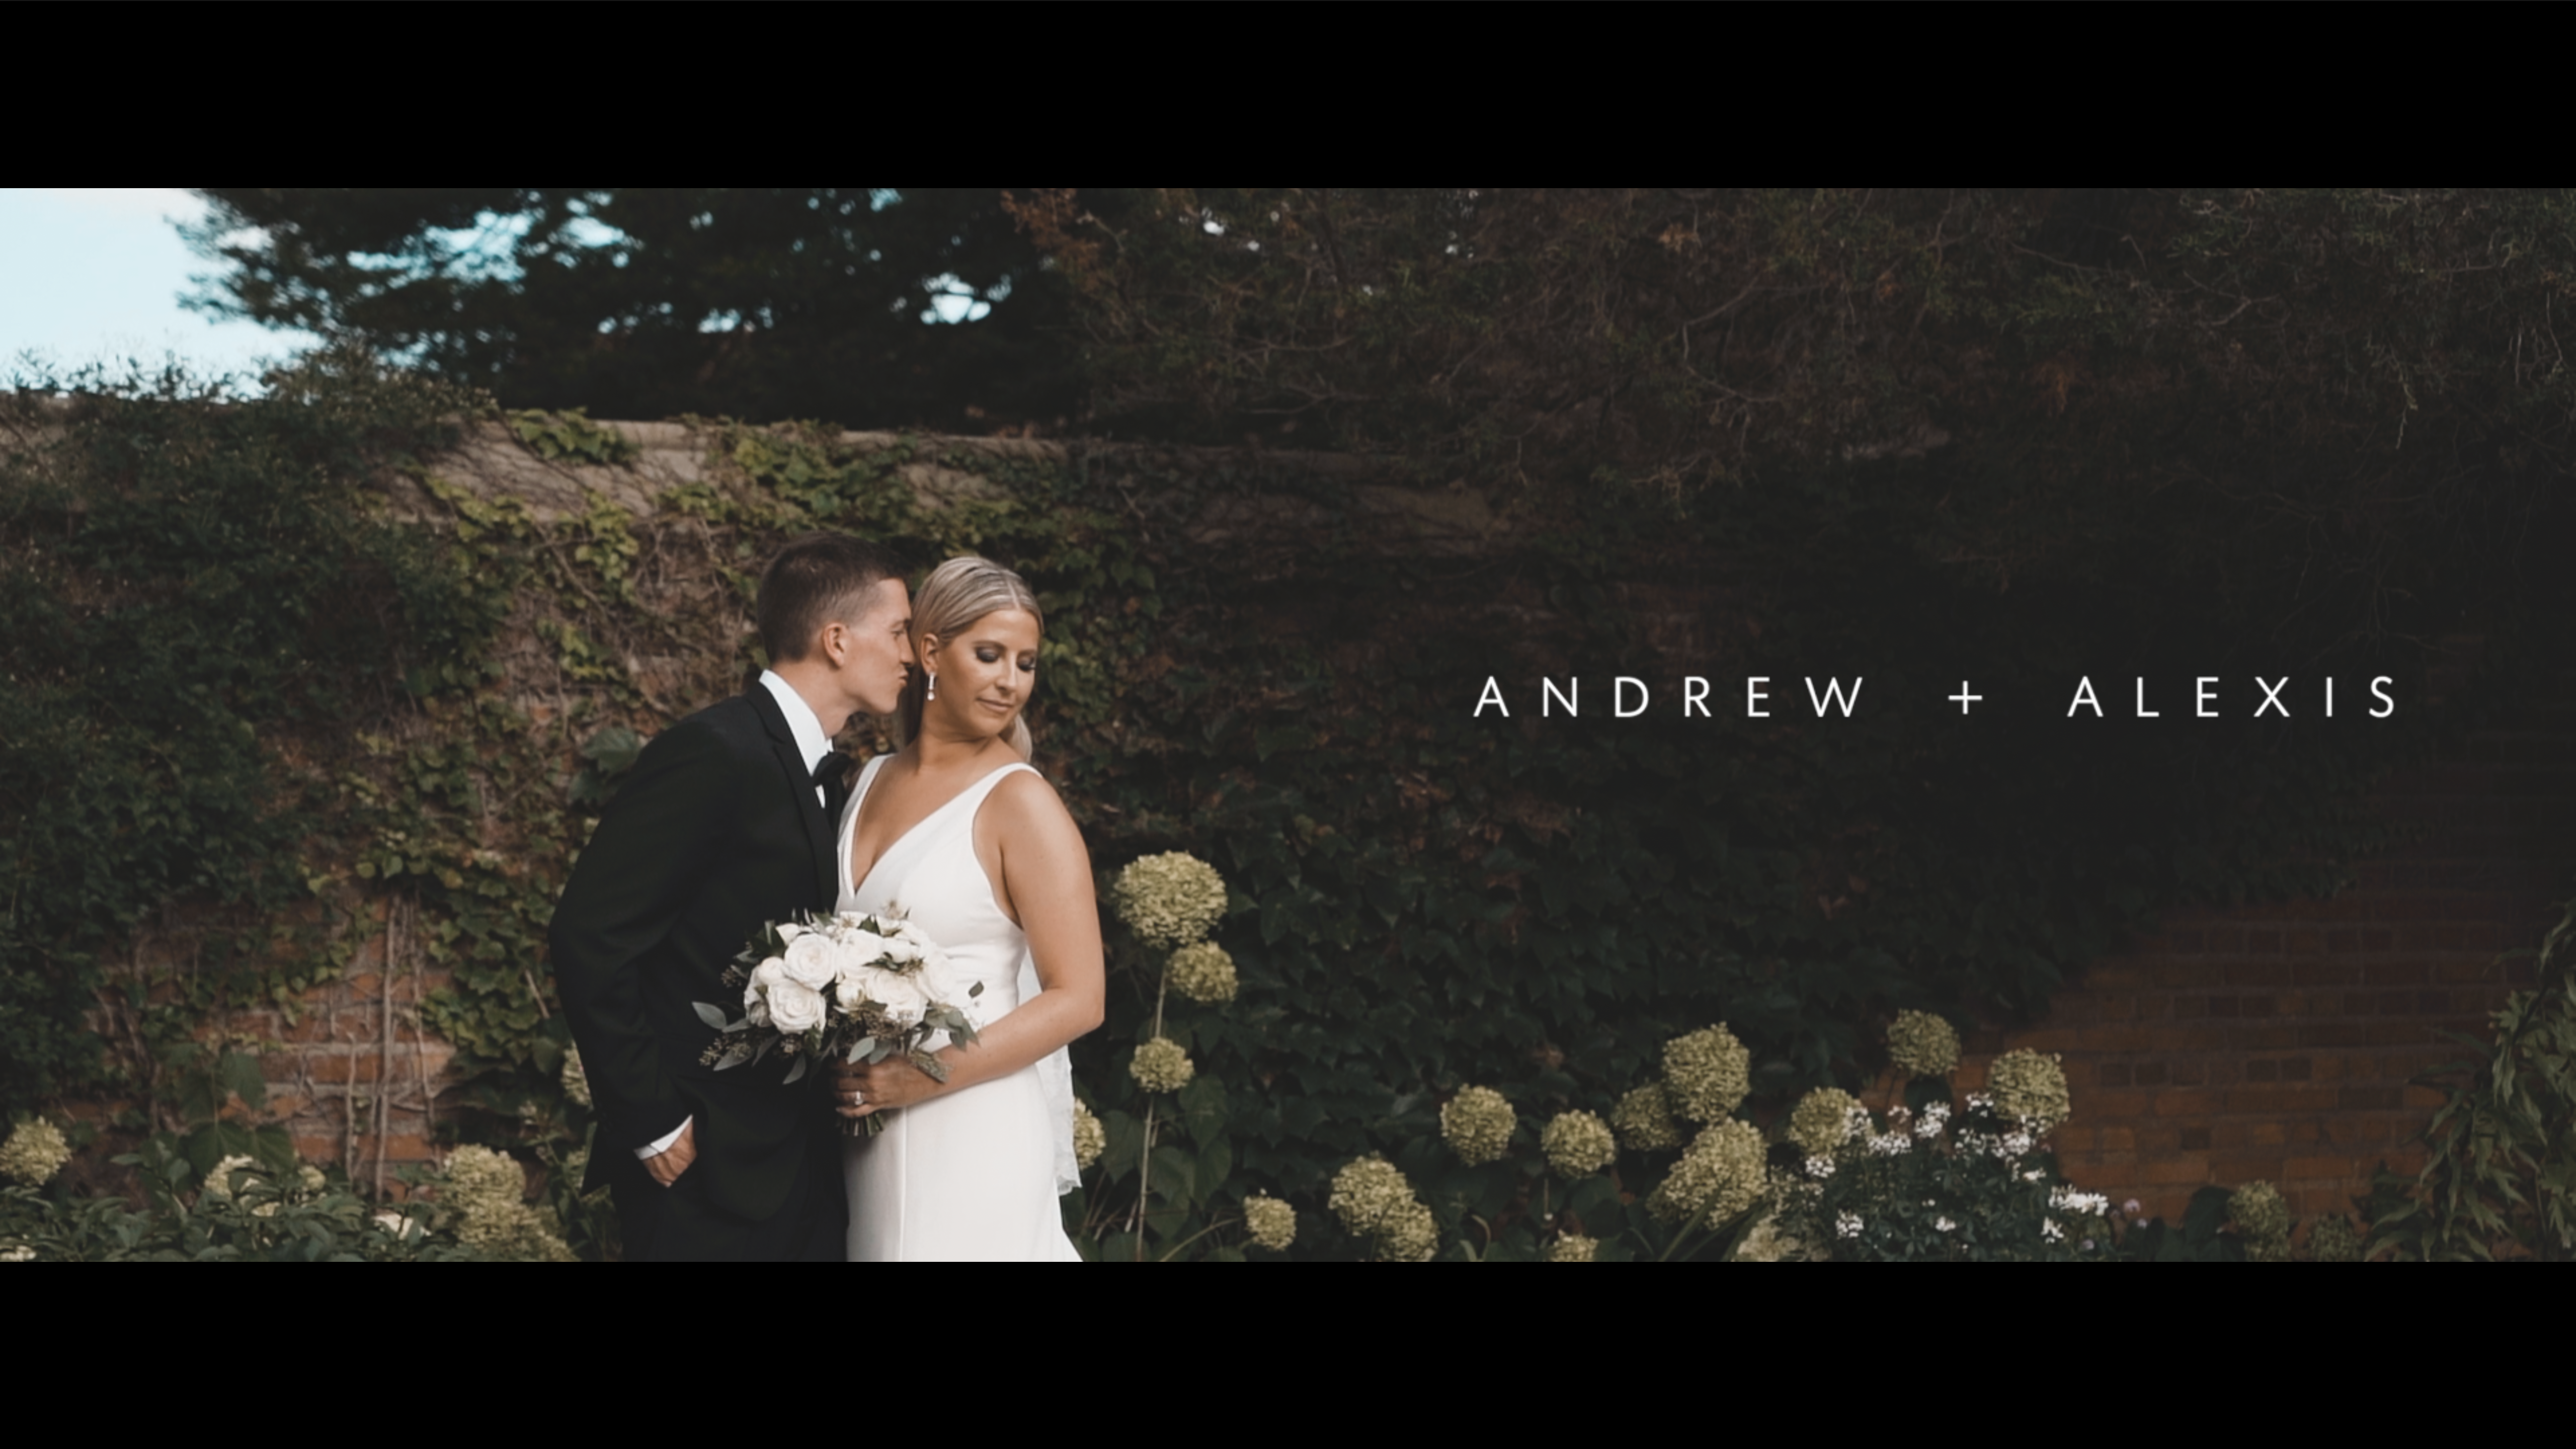 Andrew + Alexis | Rochester Hills, Michigan | Meadow Brook Hall